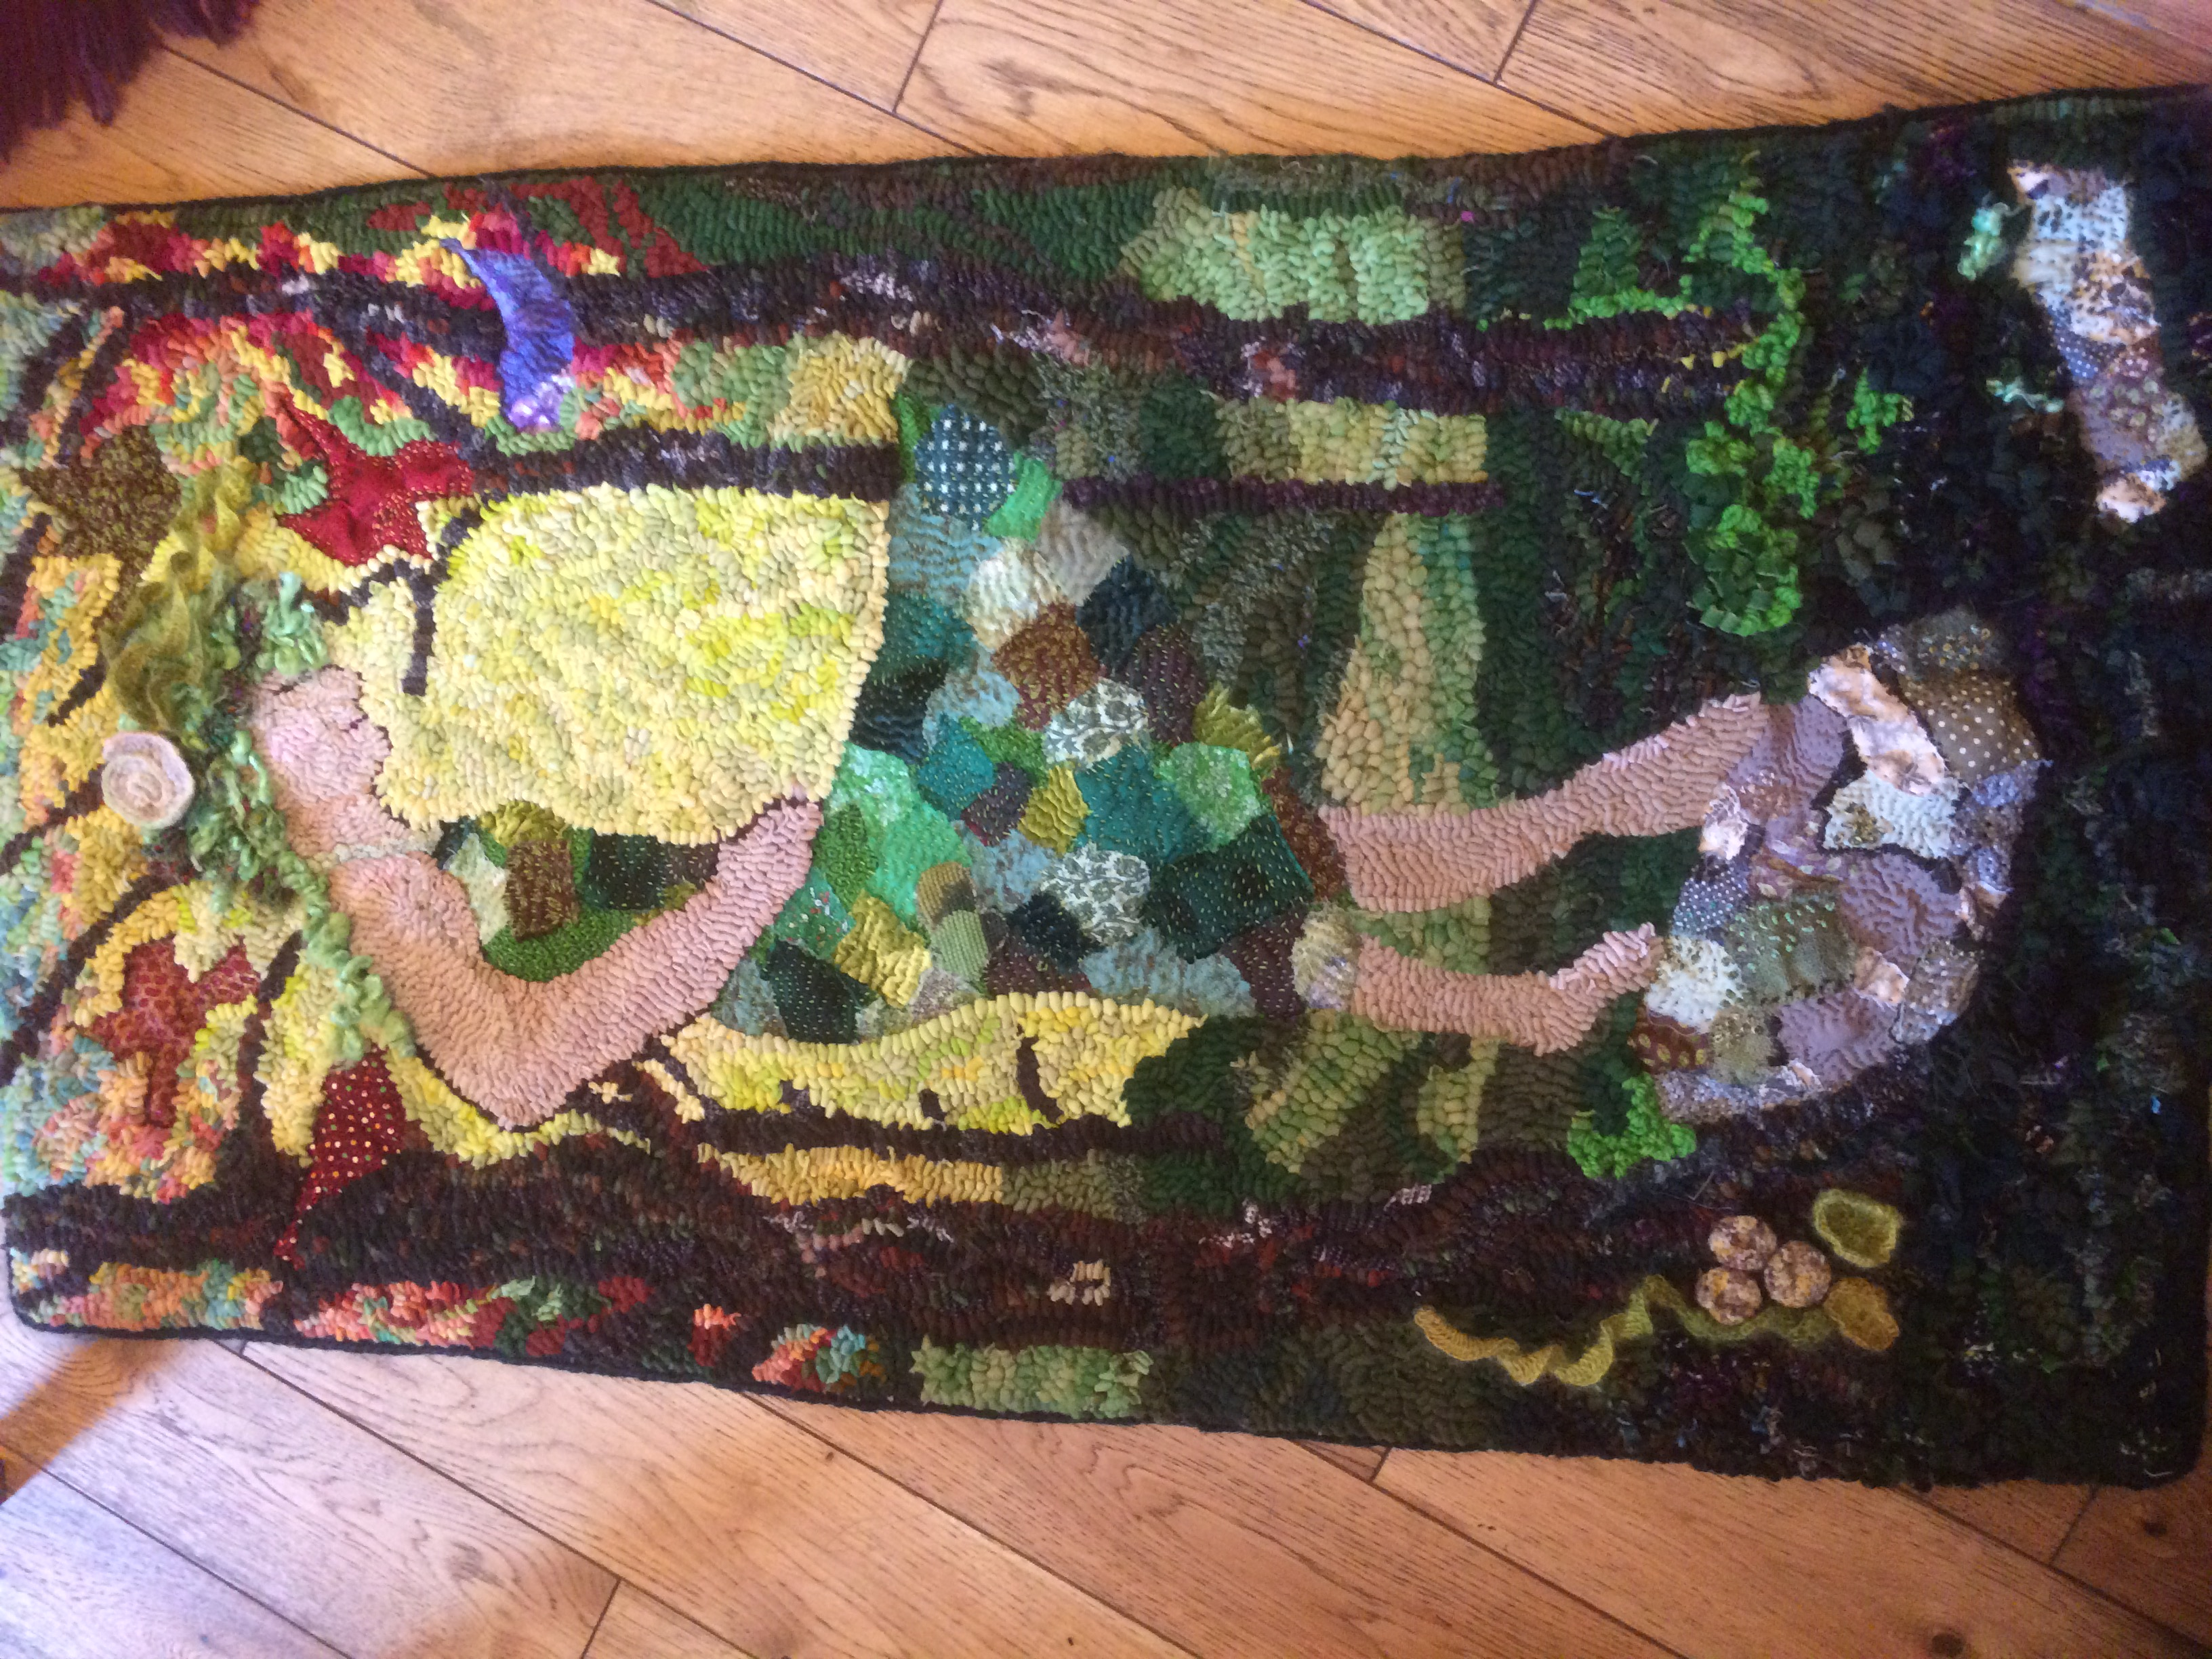 Intricate Rag Rug Design of a lady with patchwork skirt done in the loopy style